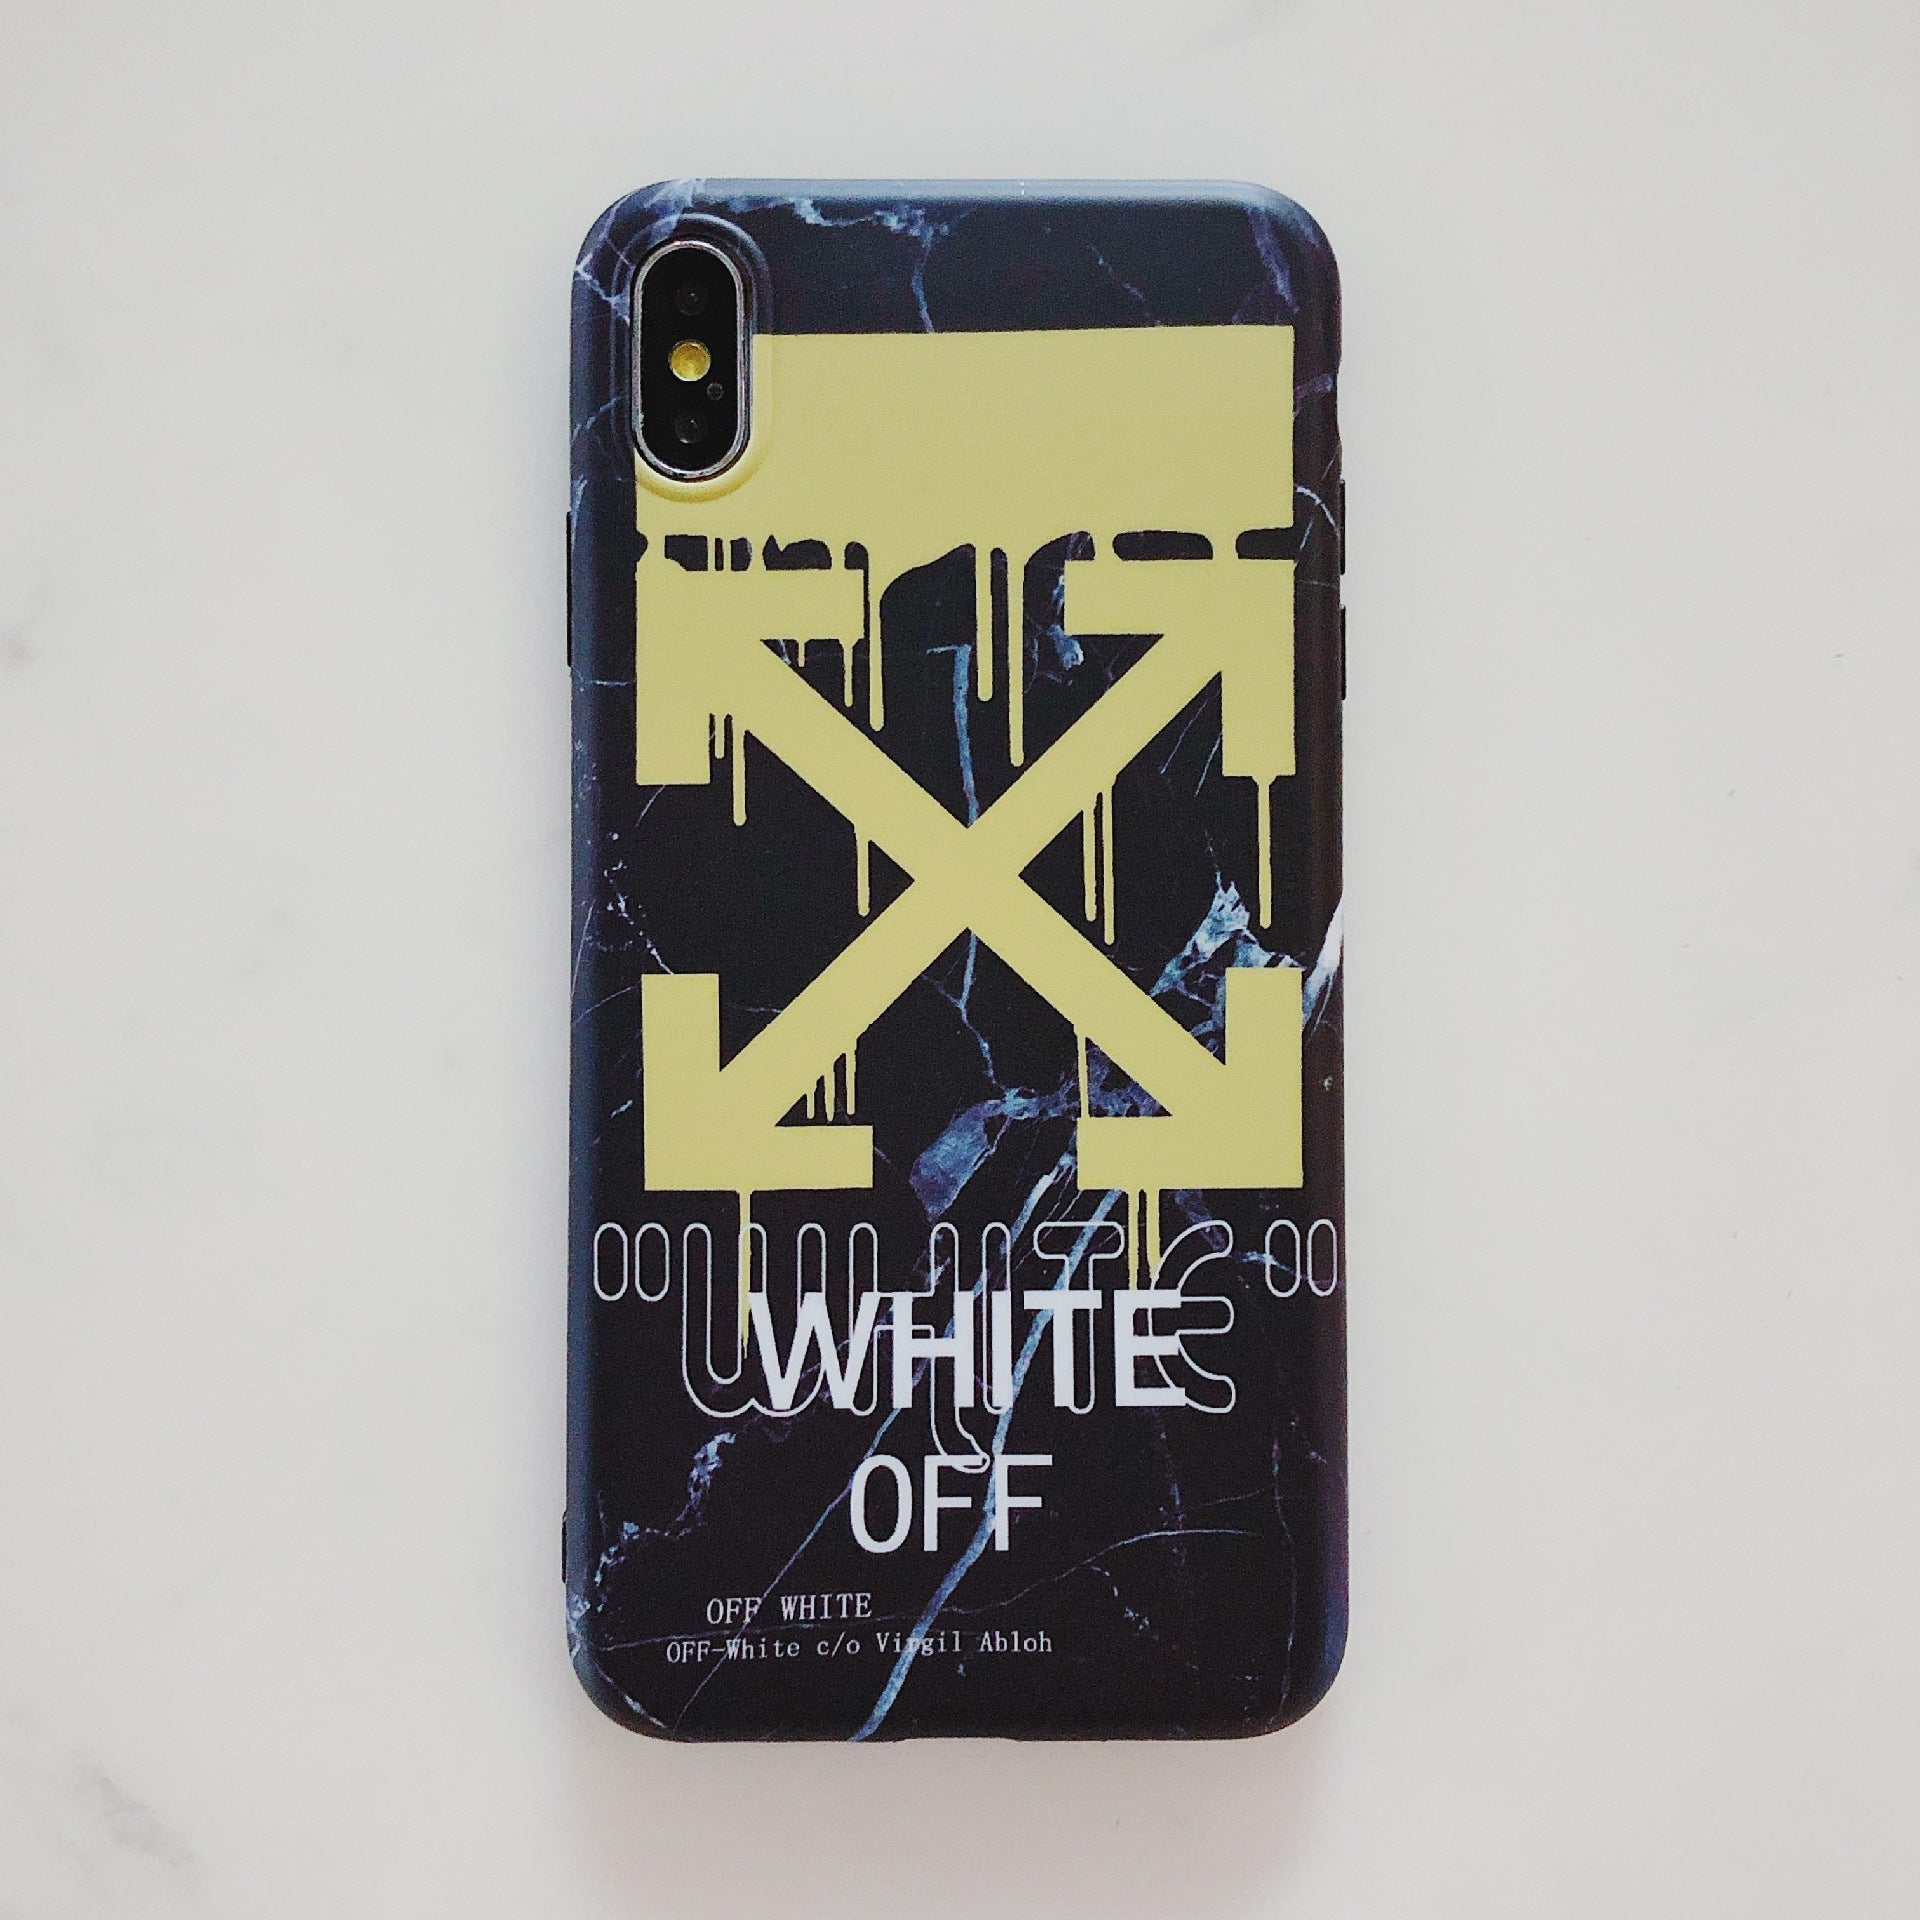 OFF White iPhone 11 Pro Max Case -  - TomorrowSummer